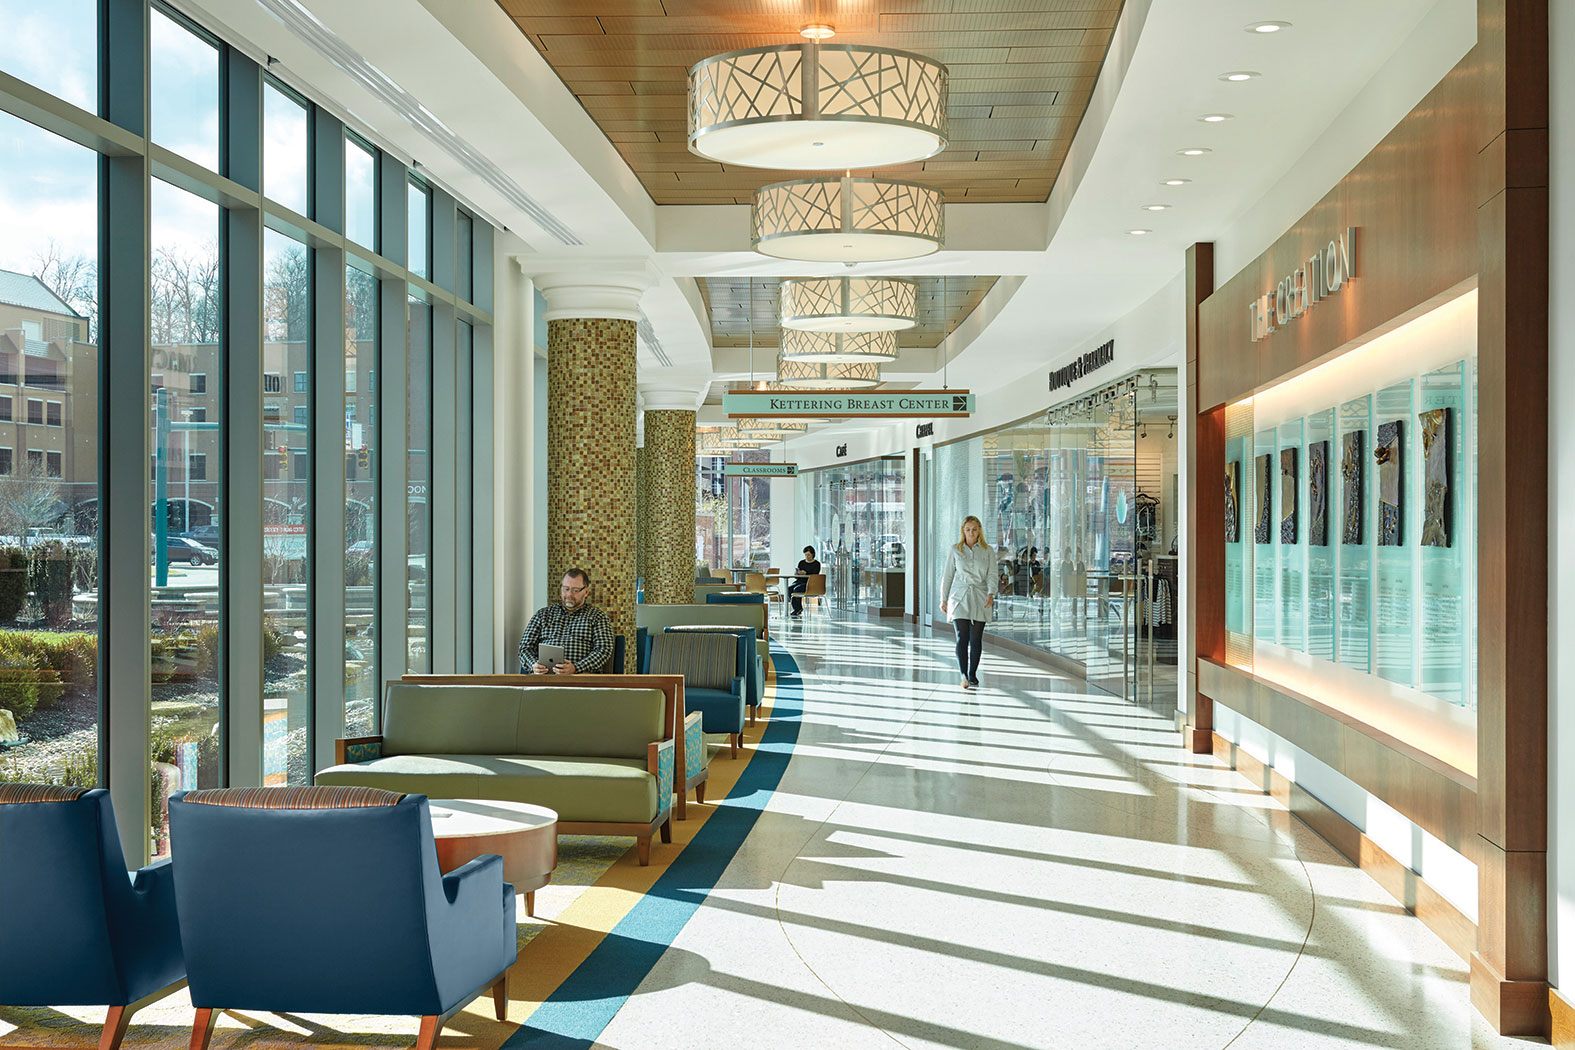 Health Care Facilities Go For High End Design In Retail